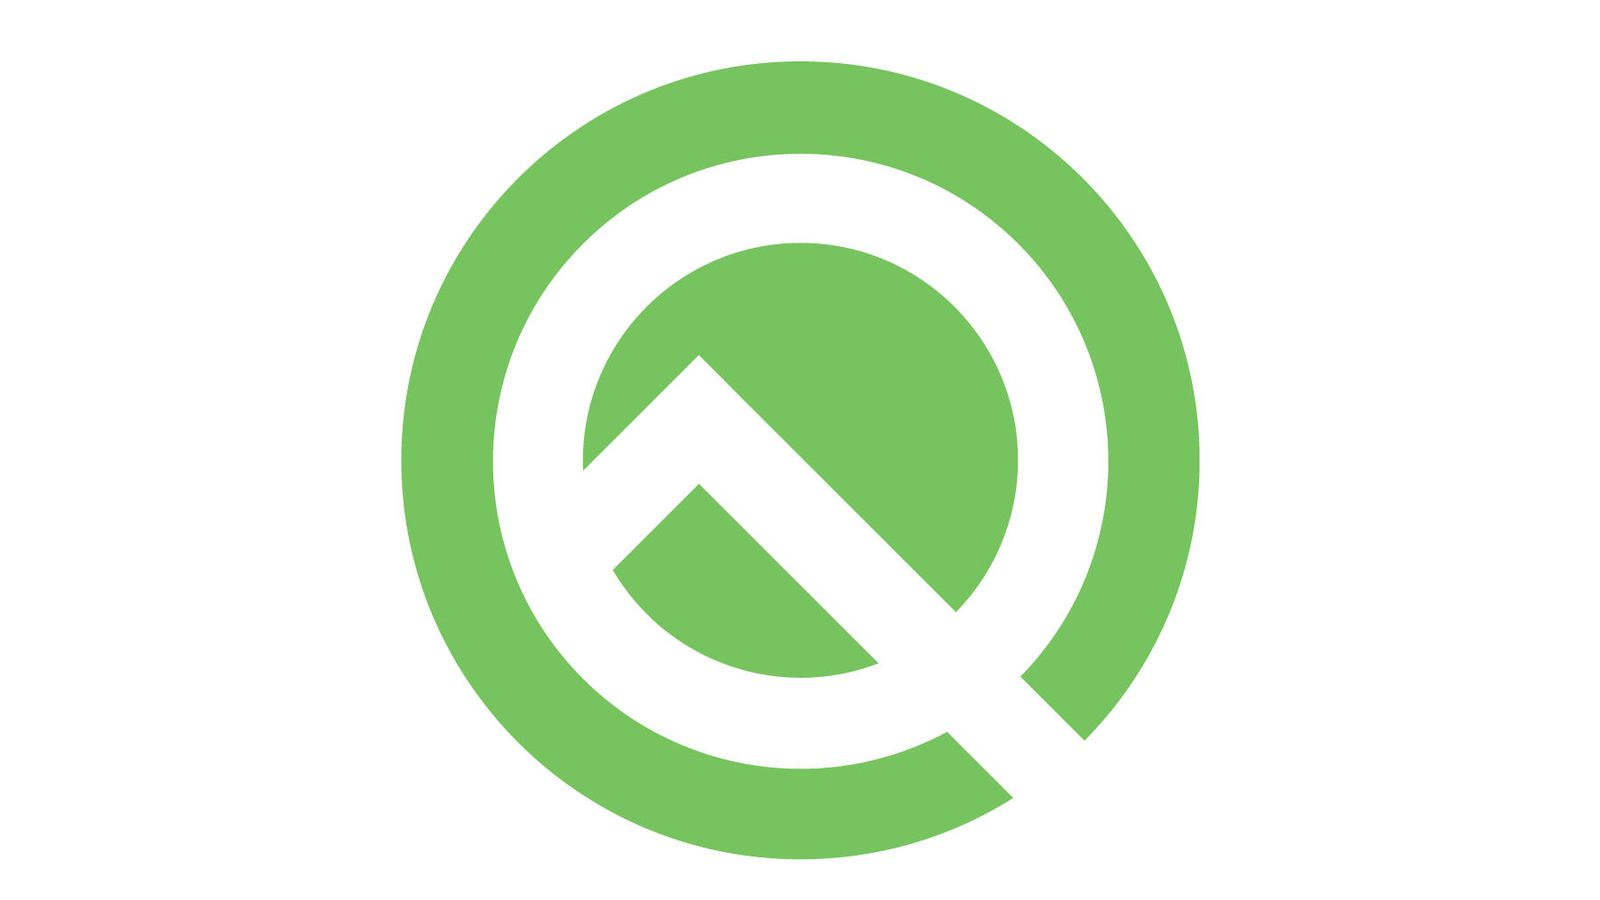 Android Q: Is it ready for prime time or not?